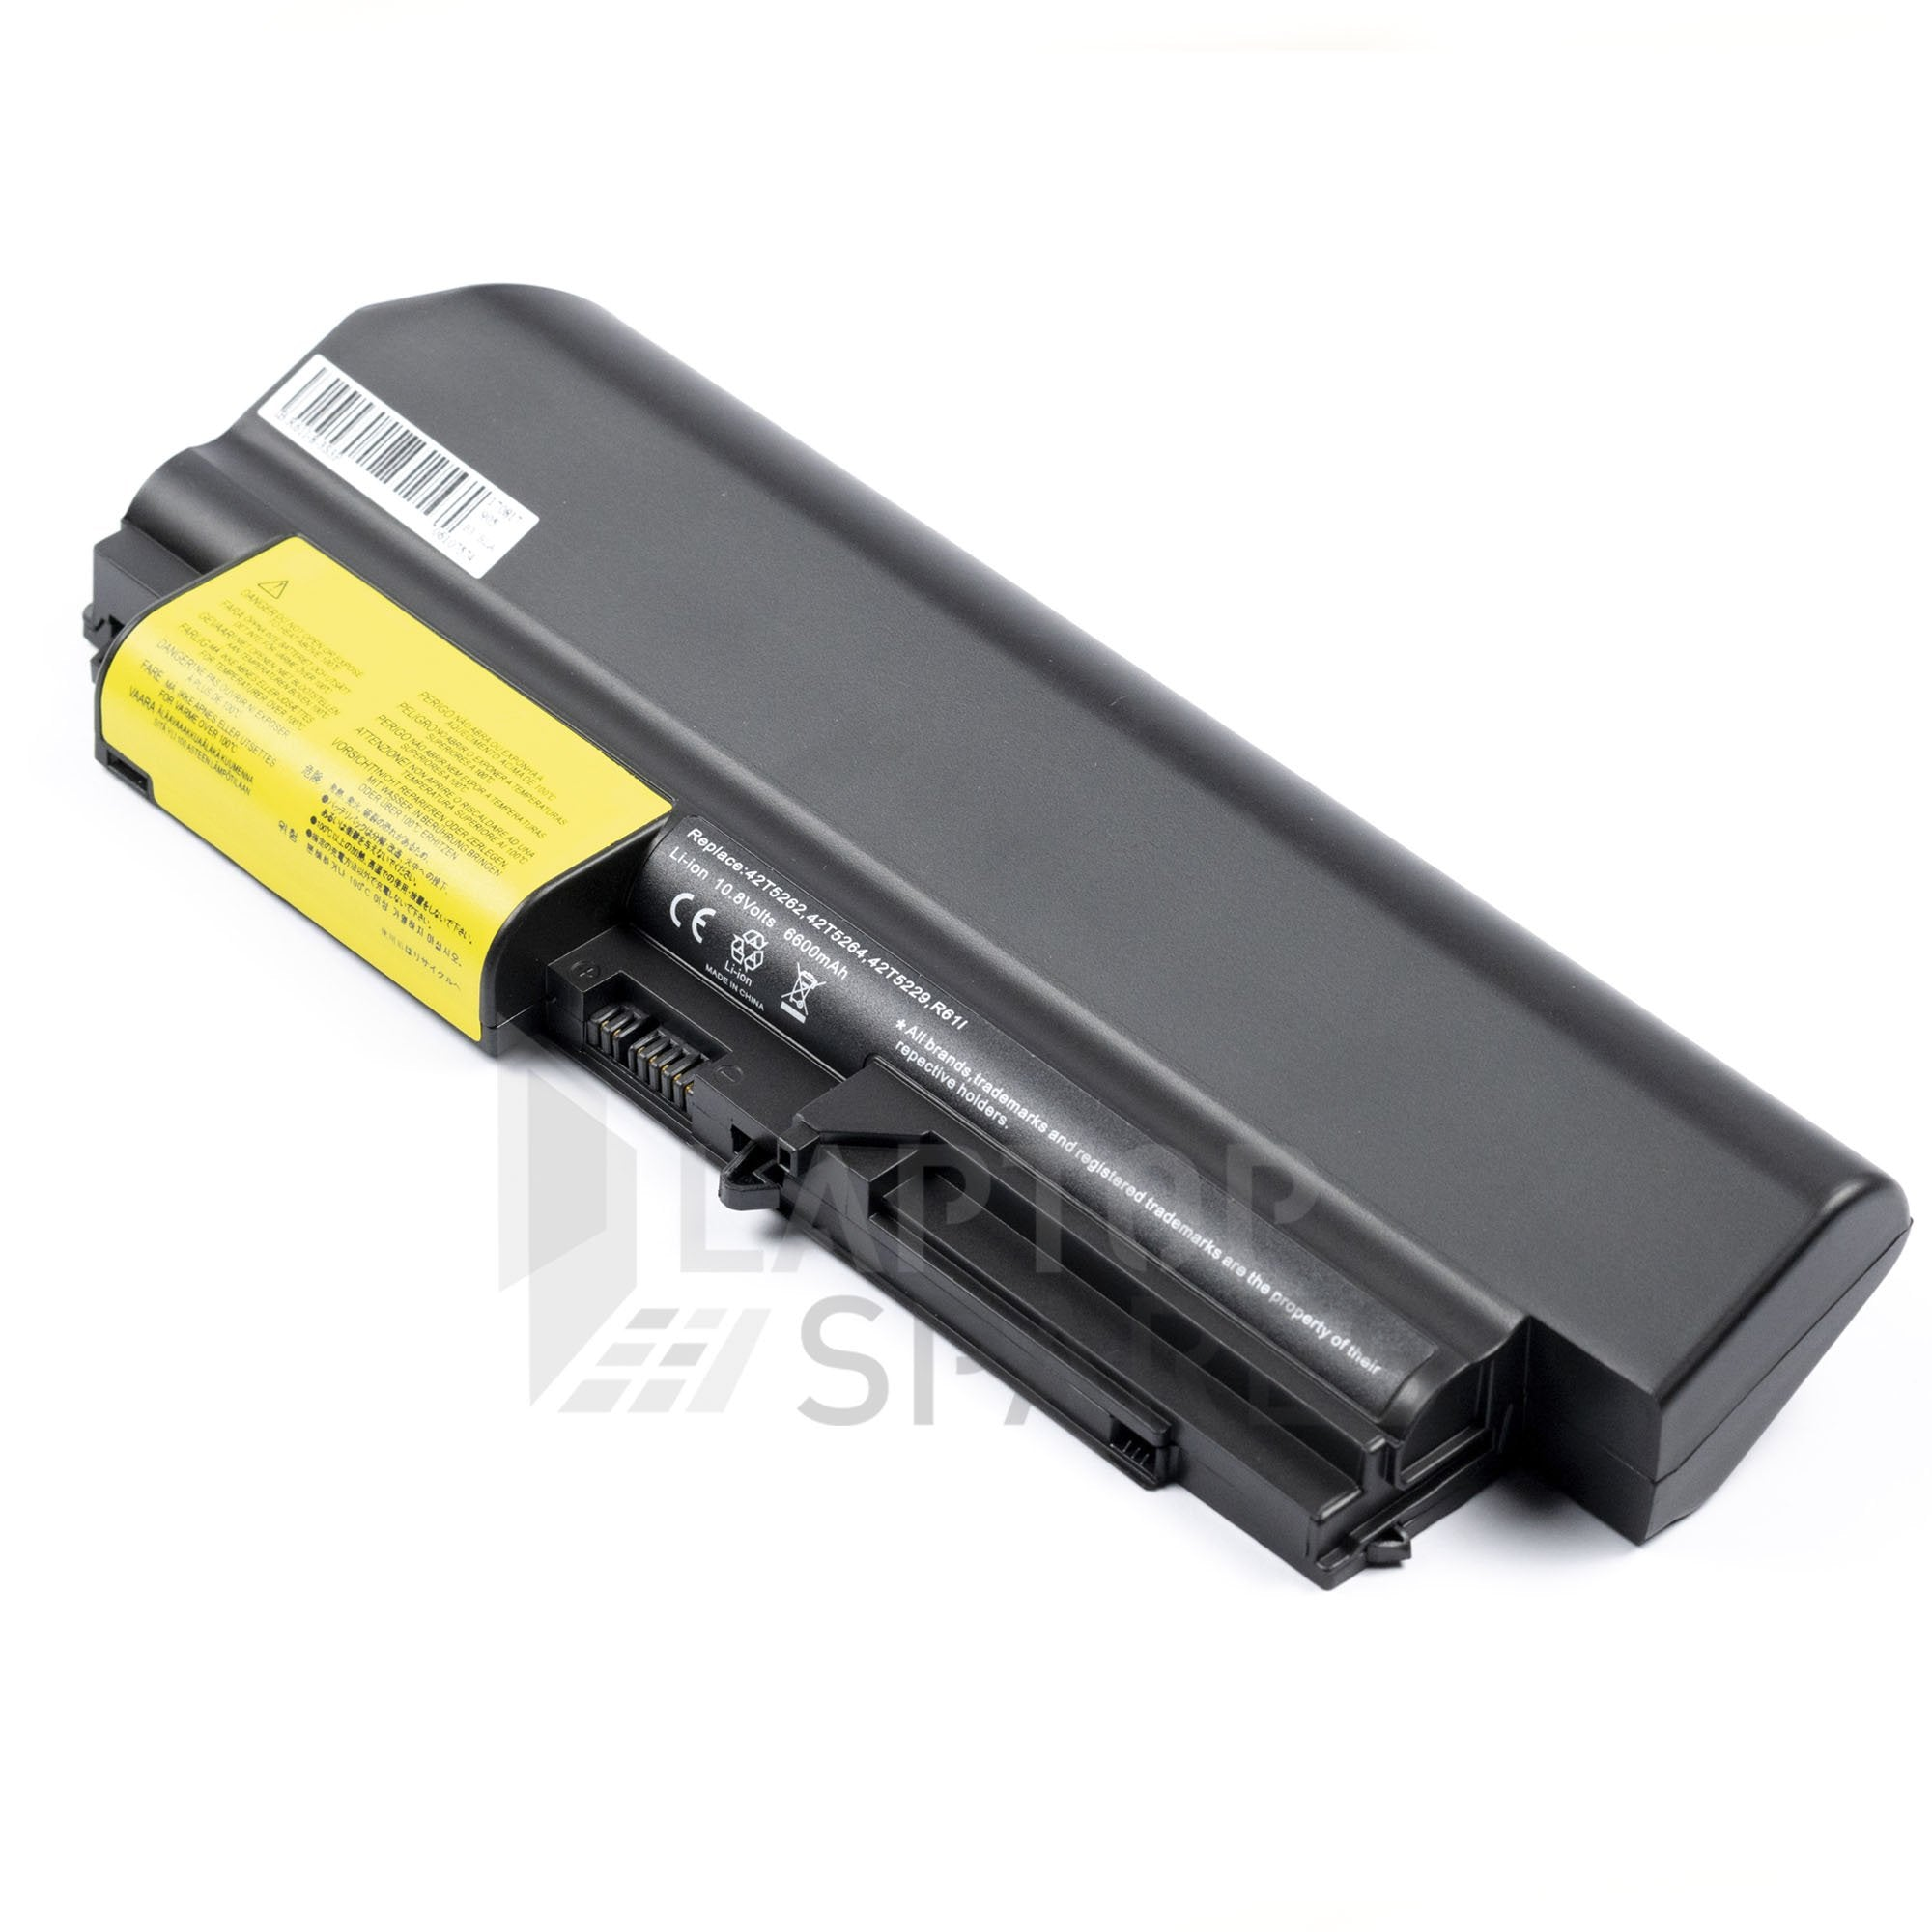 IBM ThinkPad R61i 7732 7742 6600mAh 9 Cell Battery